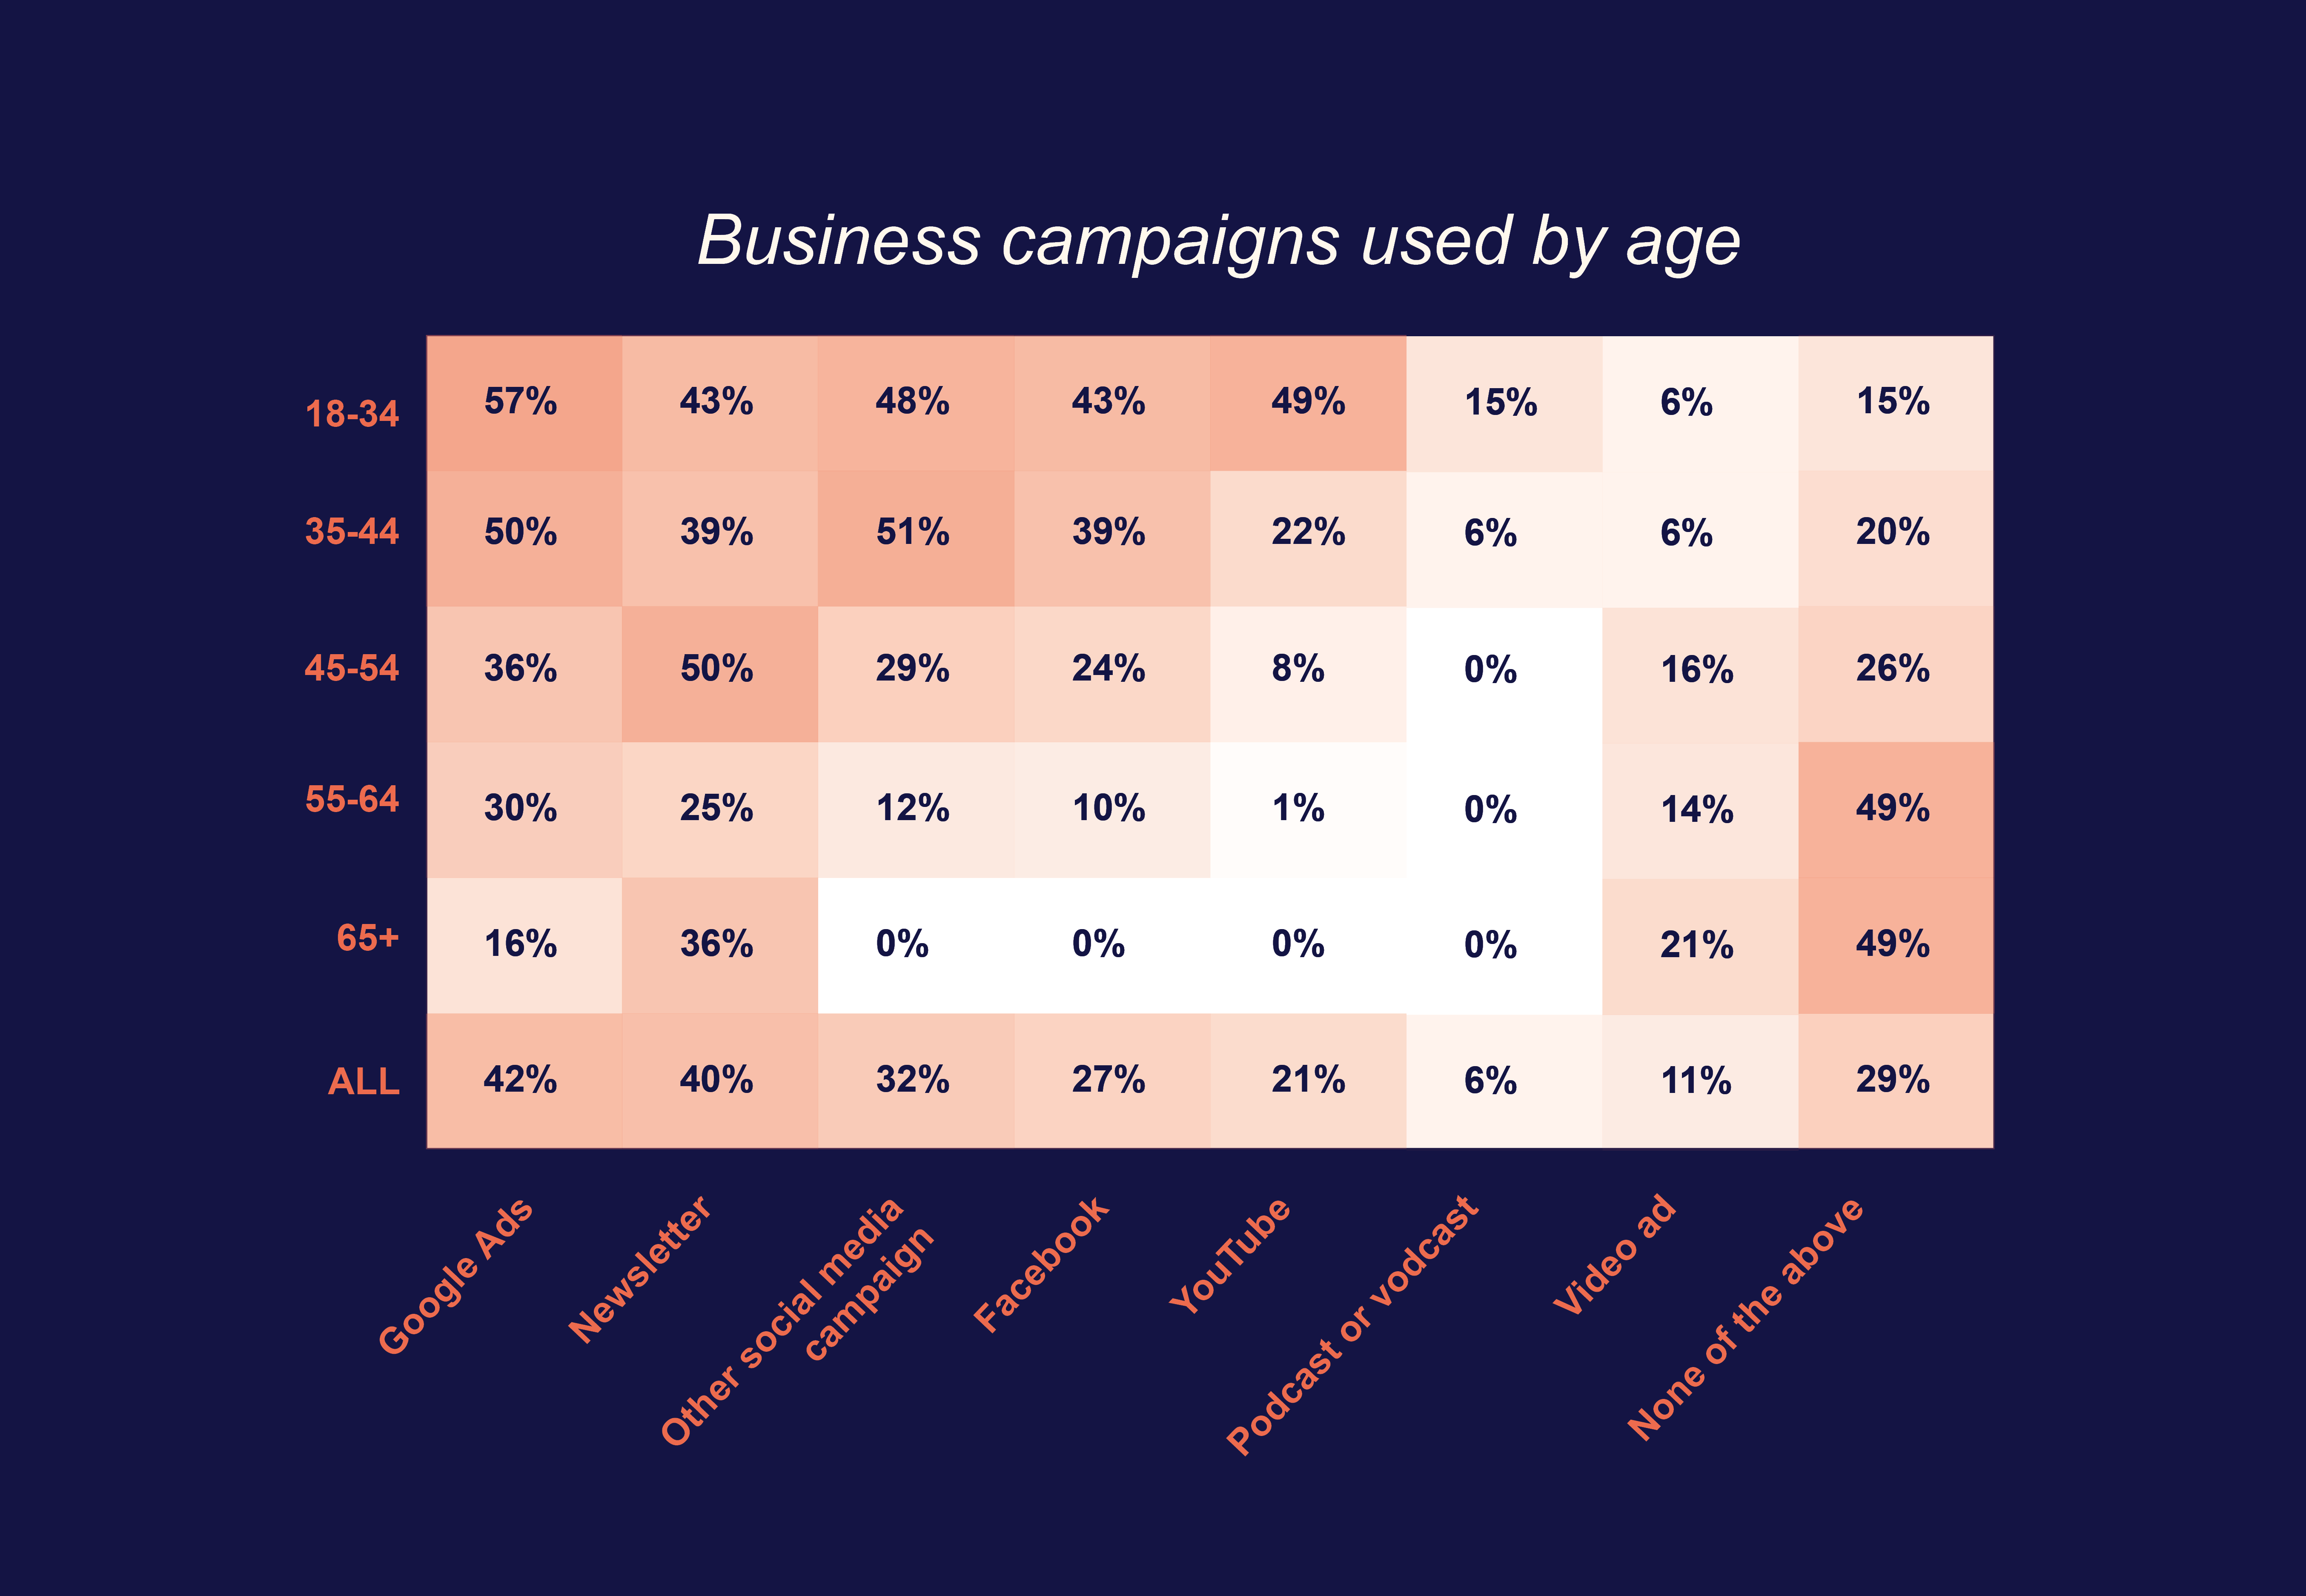 Business campaigns by age